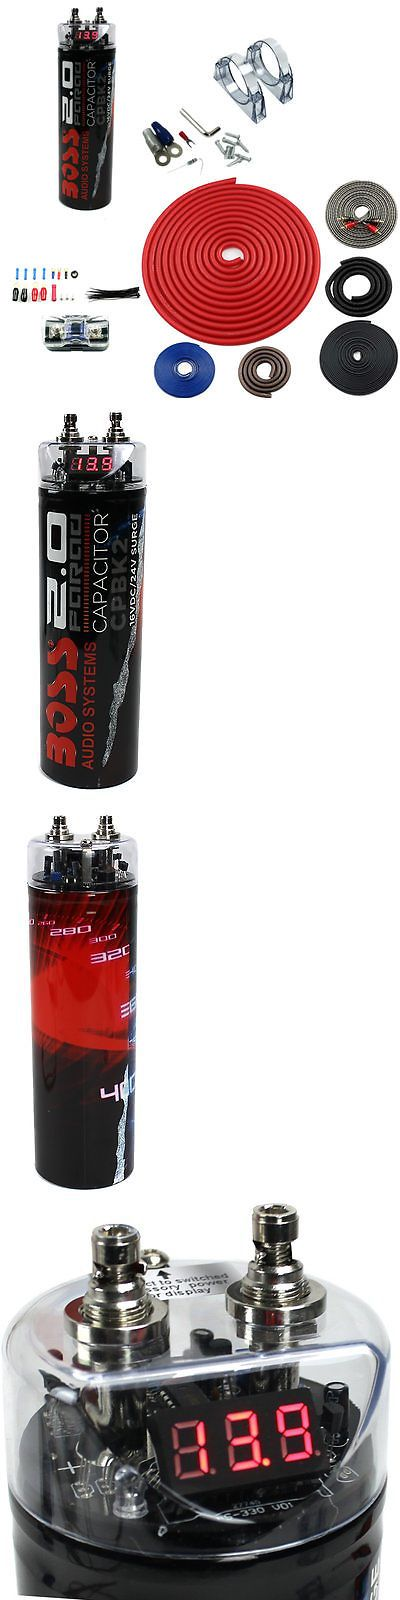 Capacitors: New Boss Cpbk2 2.0 Farad Led Digital Car Audio Capacitor Cap + 4 Gauge Amp Kit -> BUY IT NOW ONLY: $46.99 on eBay!